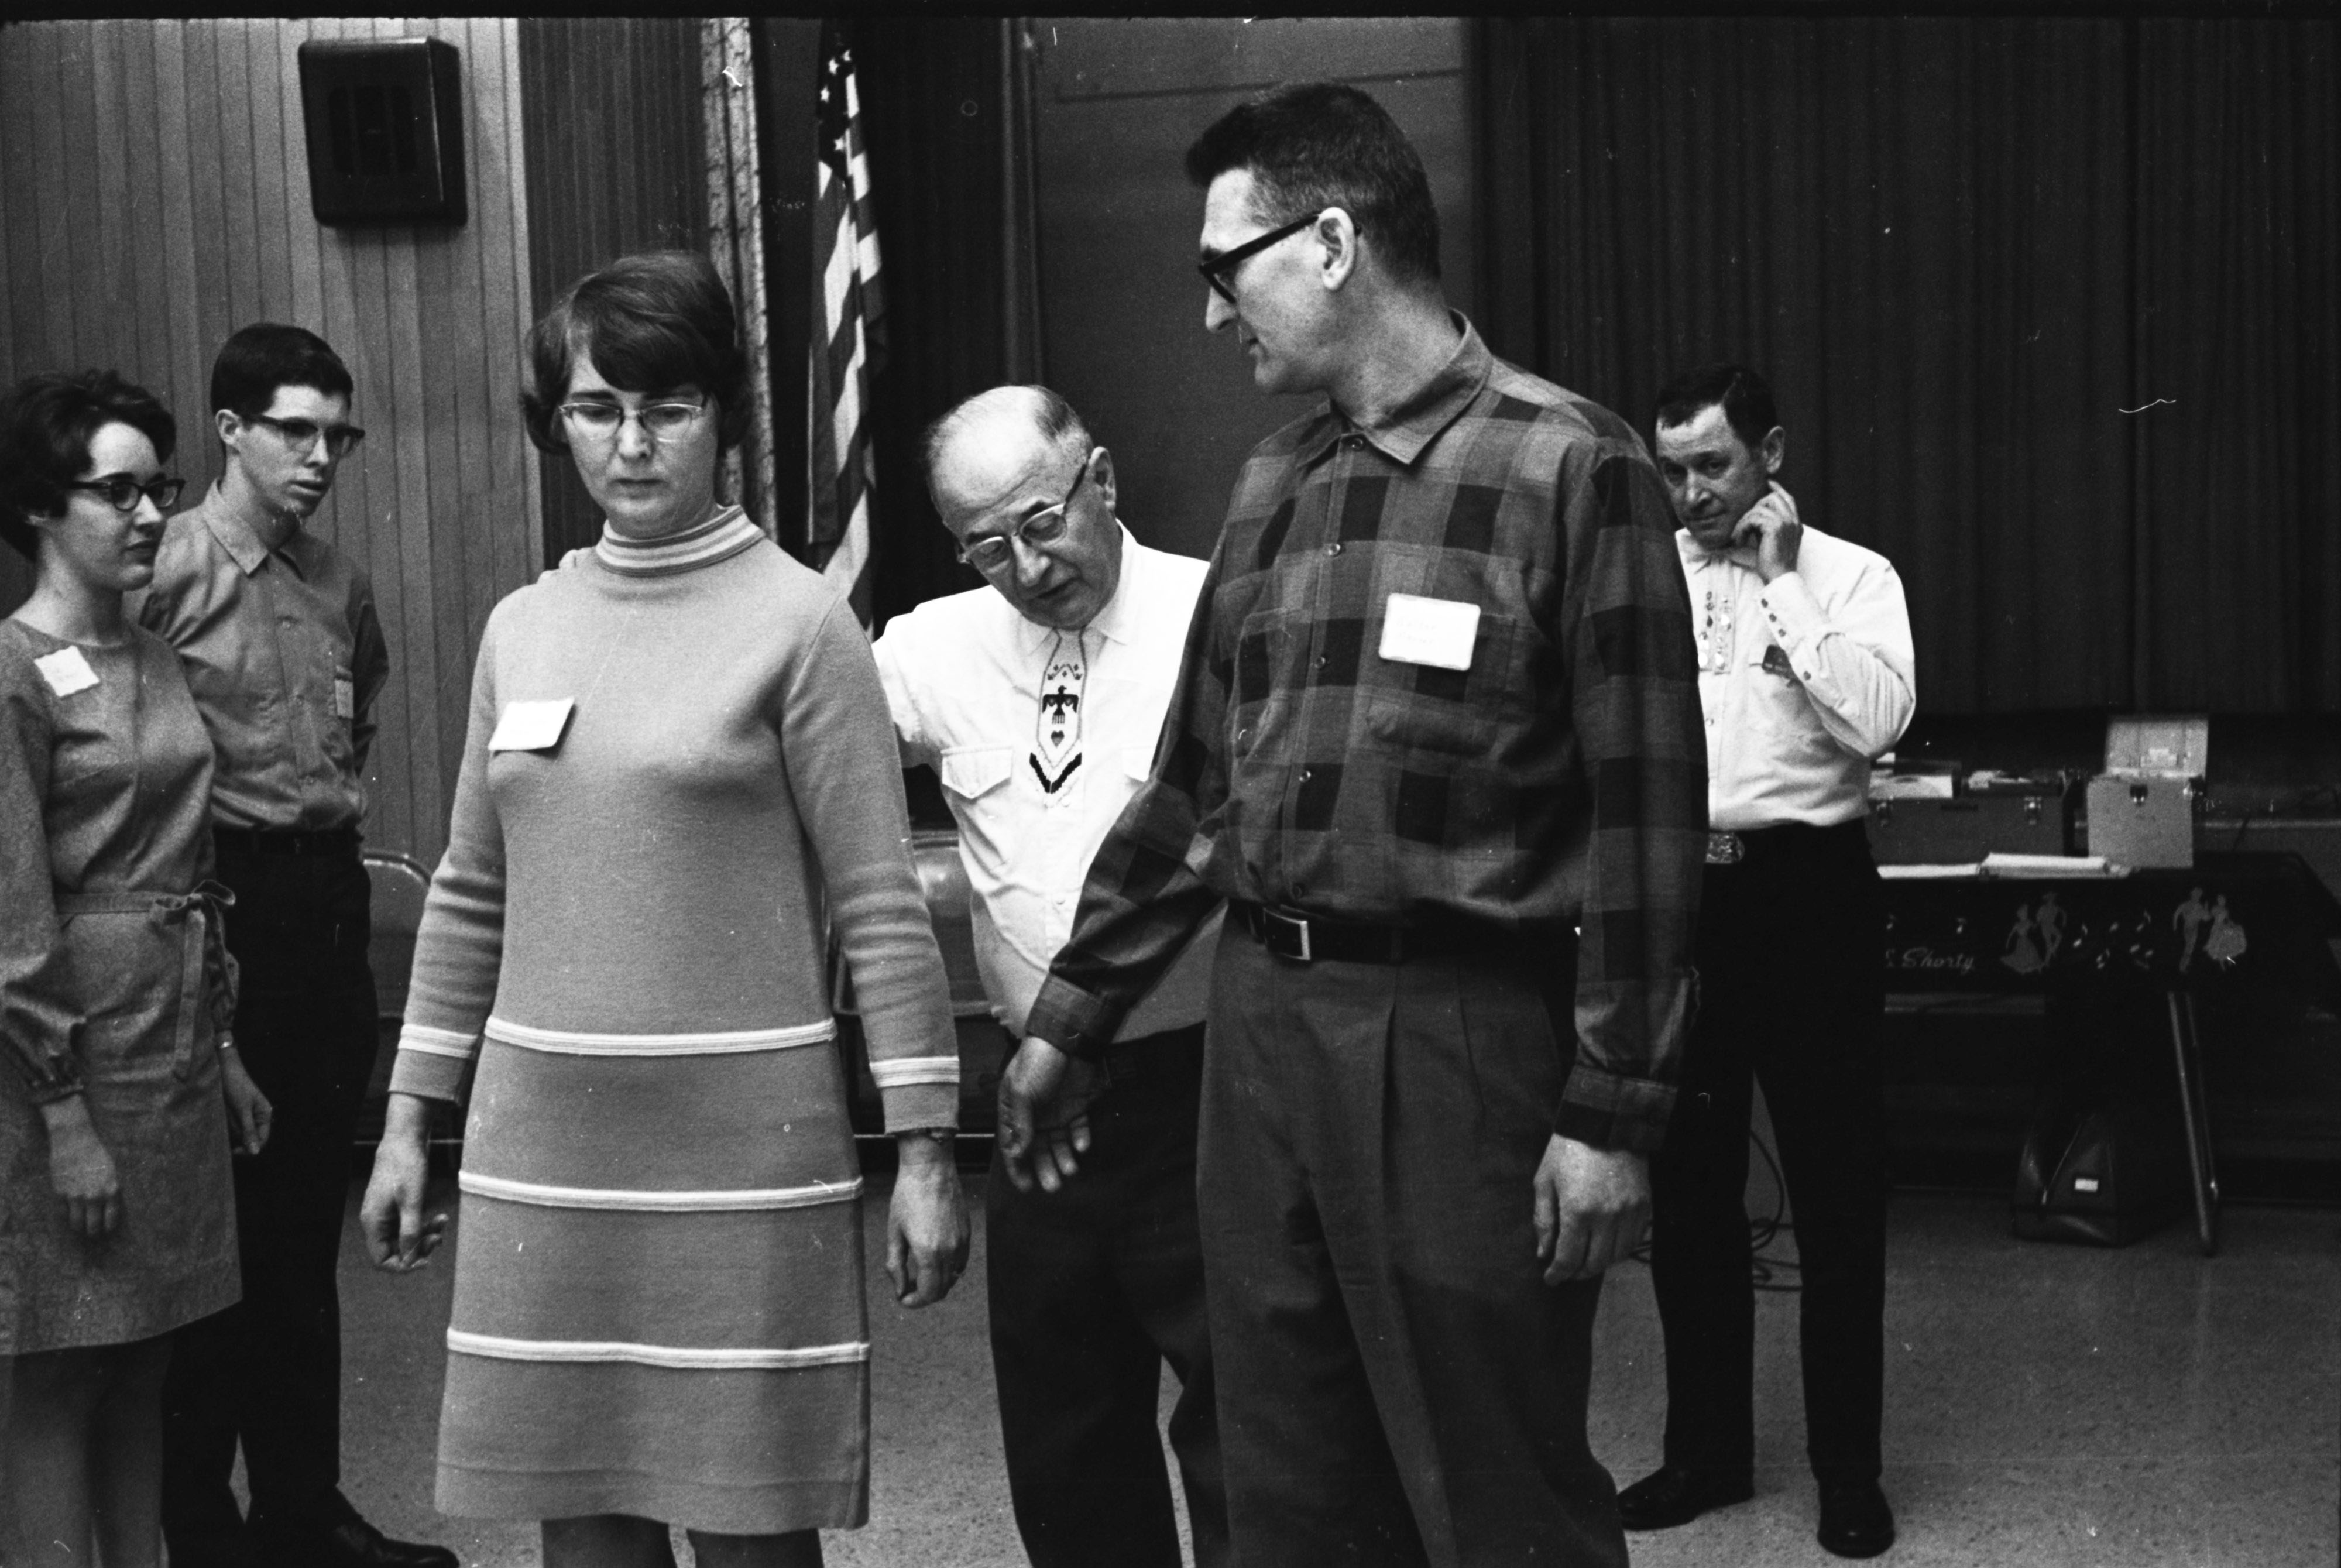 Caller-instructor Shorty Hoffmeyer explains a square dancing move, January 1969 image